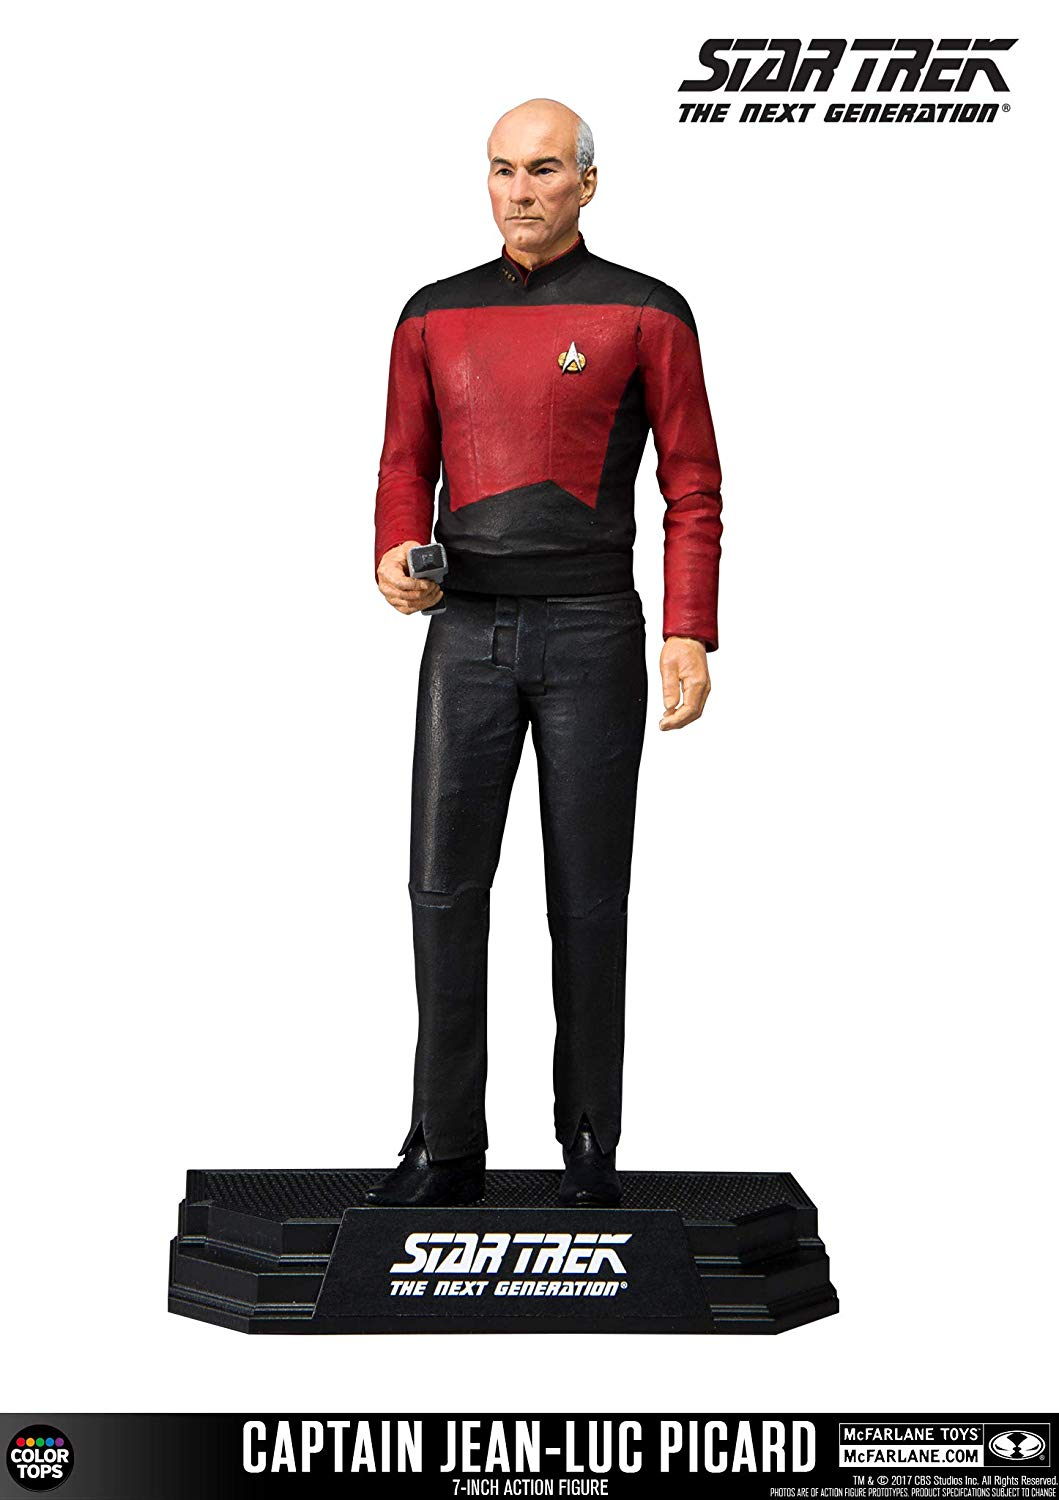 McFarlane Star Trek Captain Jean-Luc Picard Collectible 7